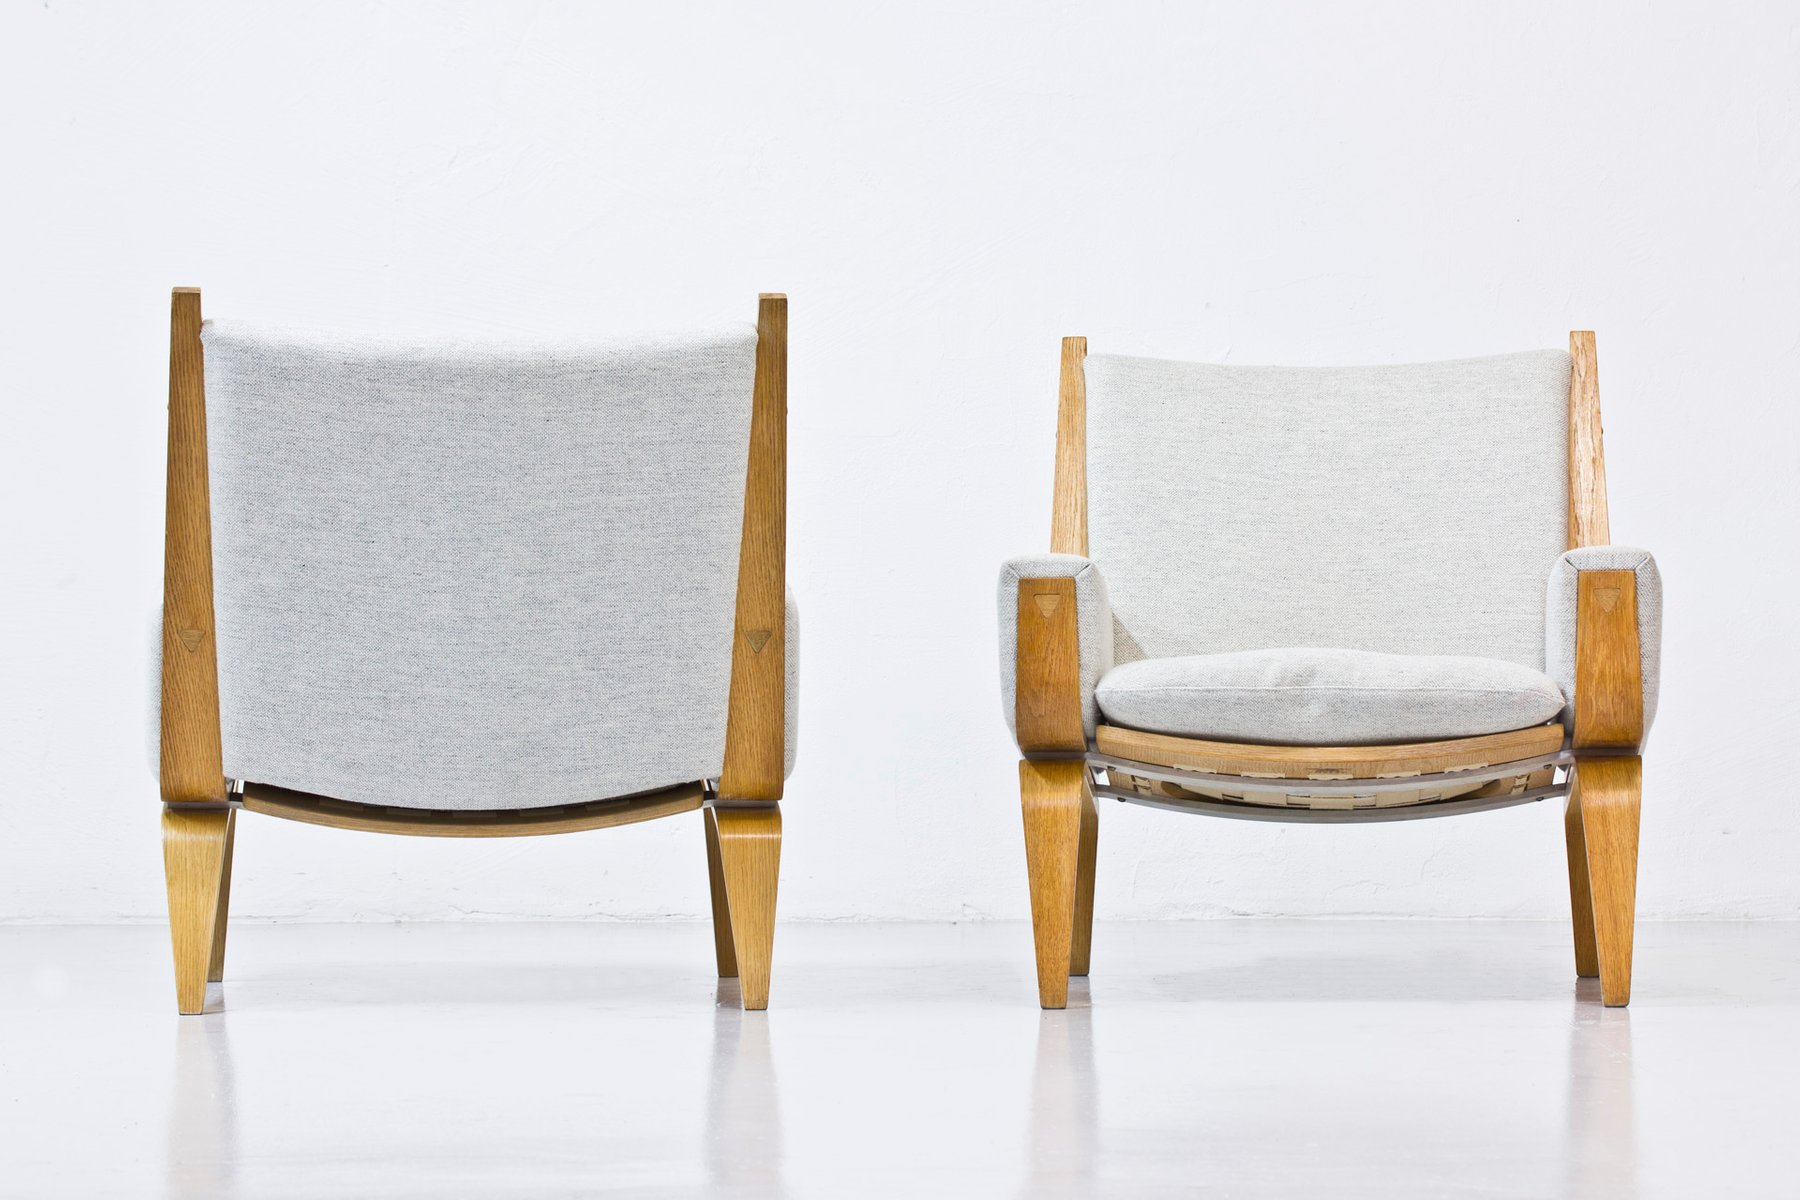 GE 501 Lounge Chairs by Hans J Wegner for Getama Set of 2 for